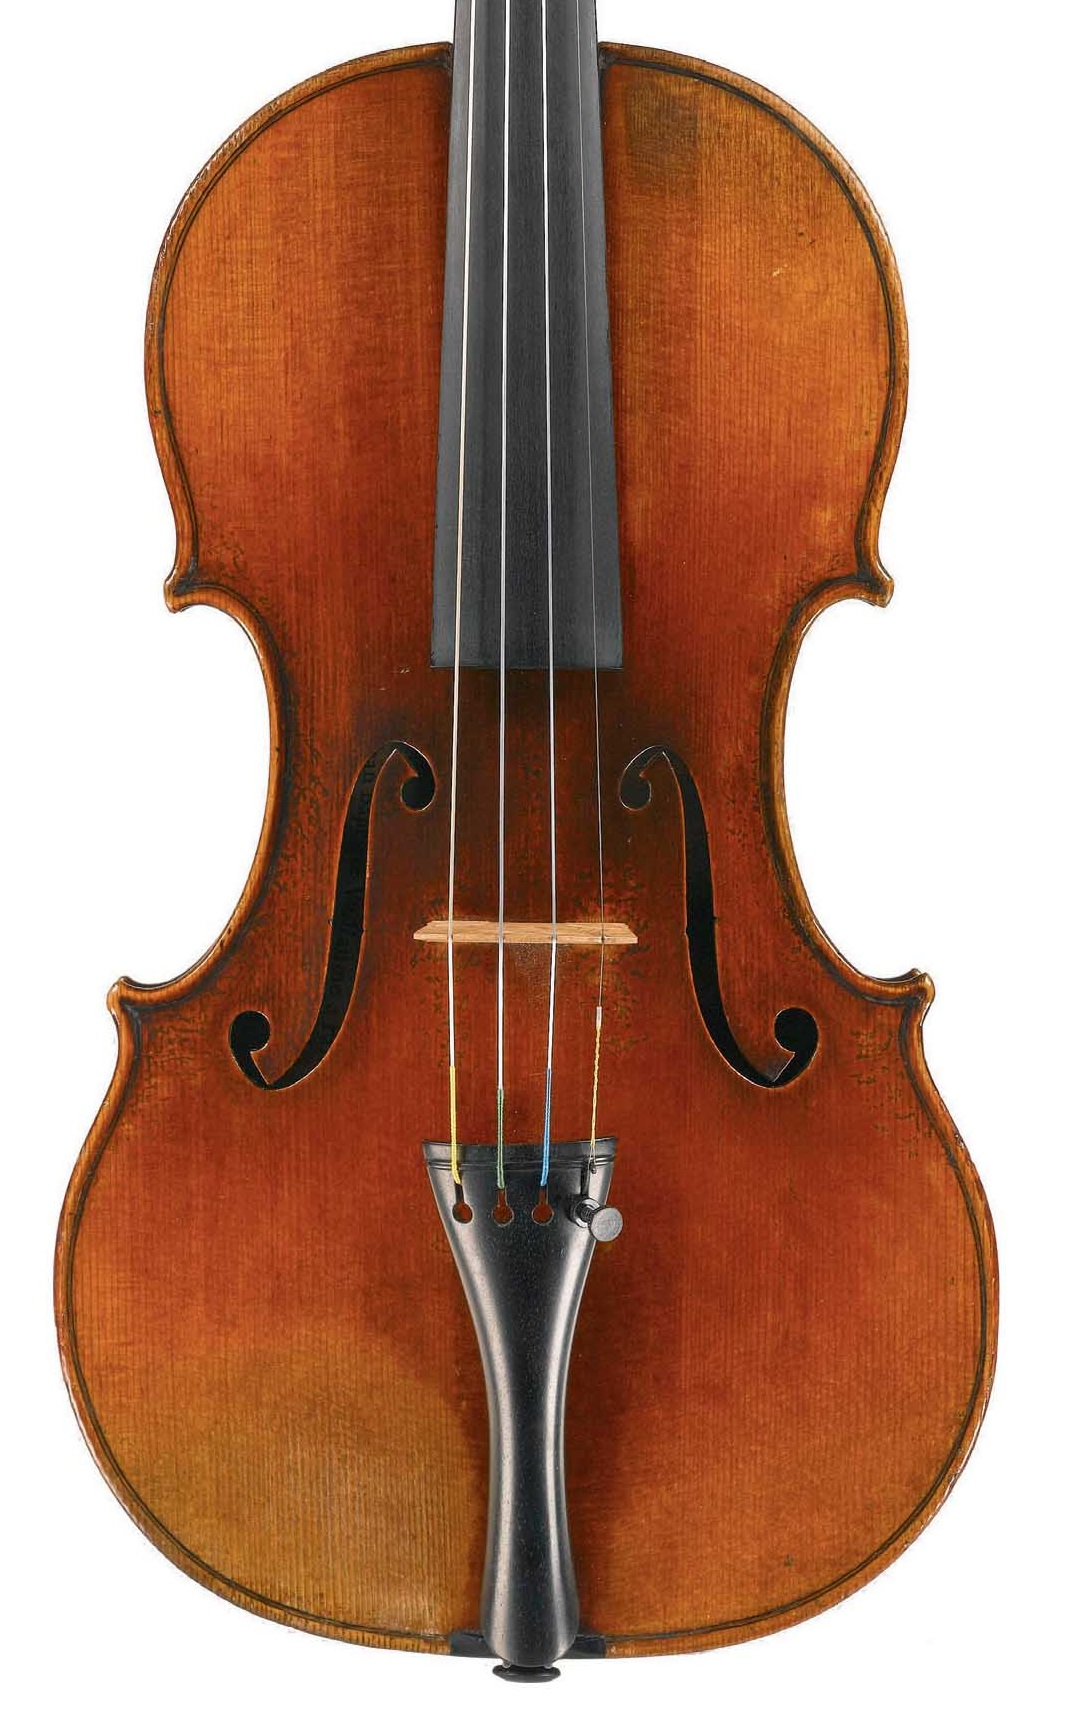 Front of violin by JB Vuillaume, dated 1854, exhibited by Ingles & Hayday at Sotheby's in 2012